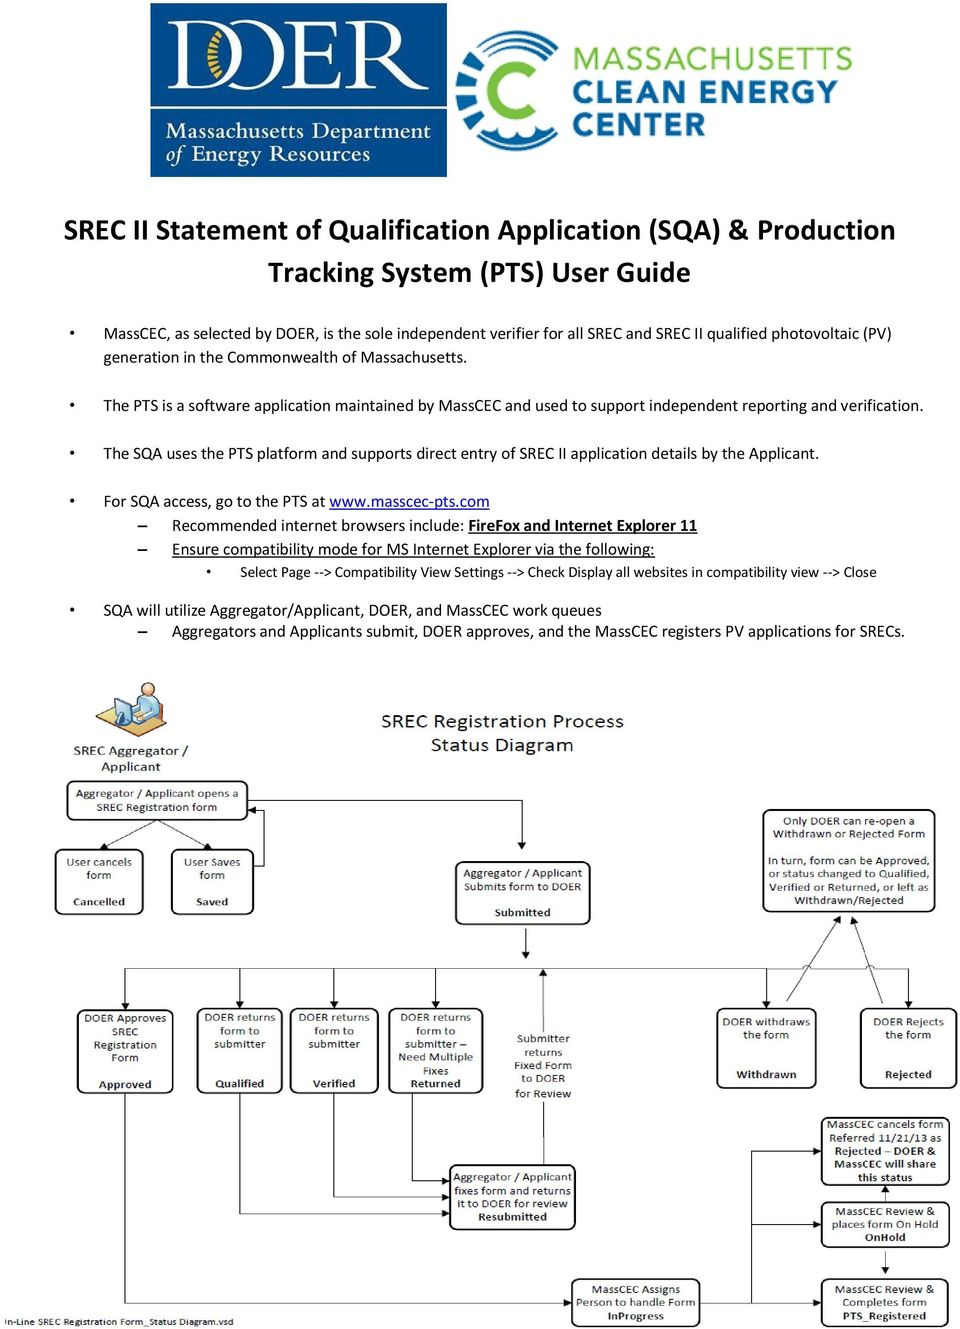 The SQA uses the PTS platform and supports direct entry of SREC II application details by the Applicant. For SQA access, go to the PTS at www.masscec-pts.